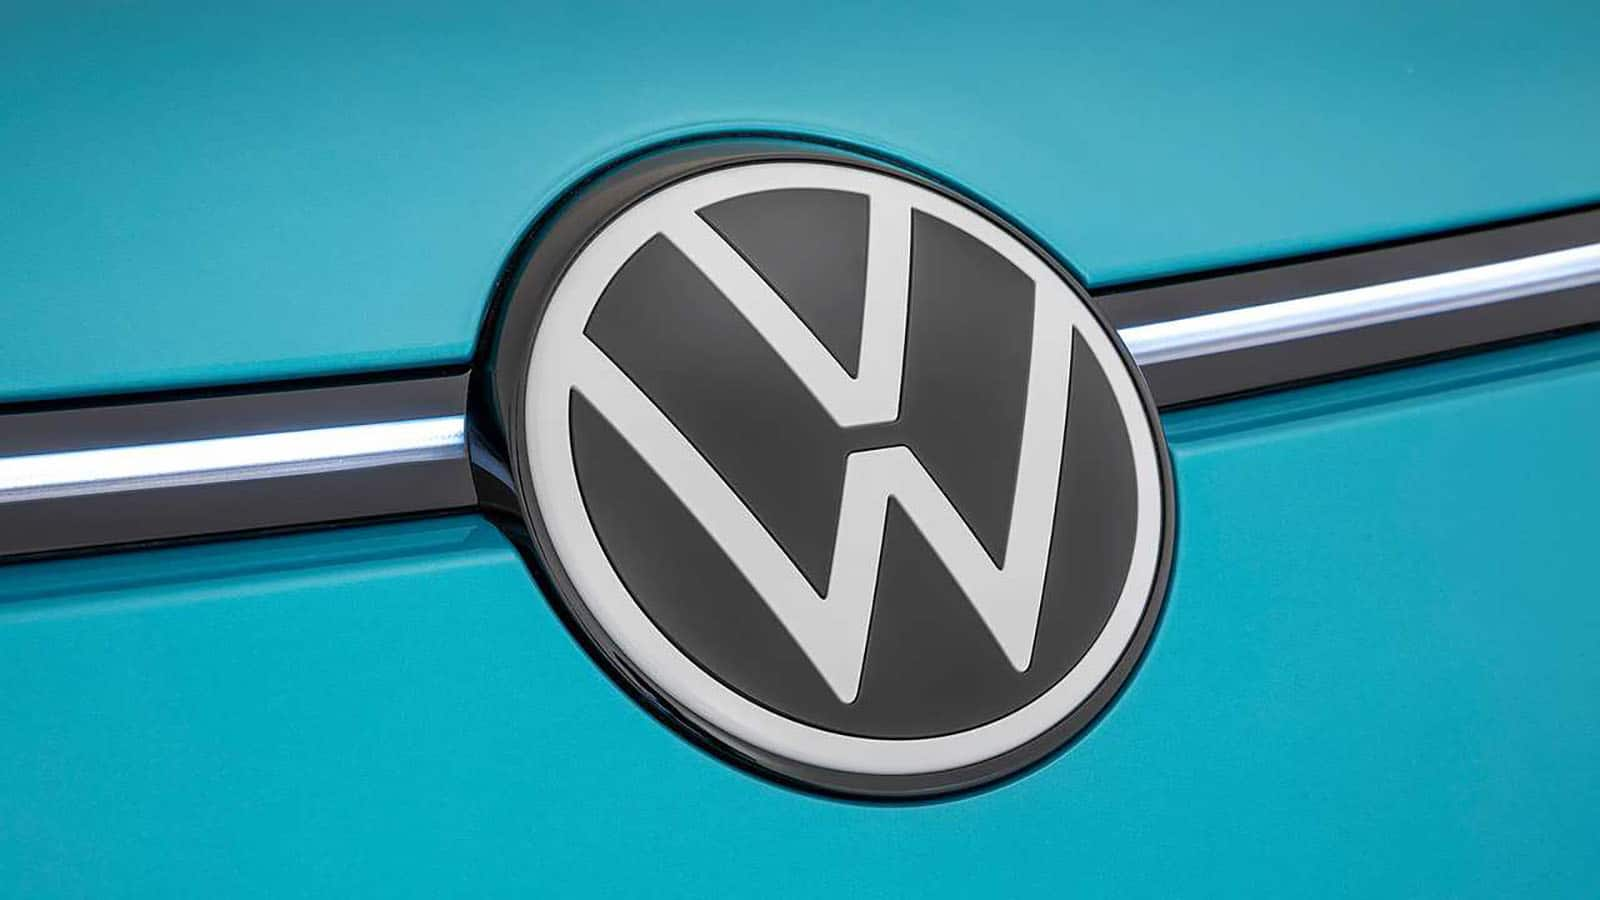 New Volkswagen Logo Unveiled Marking A New Electric Era At Vw Motor Illustrated